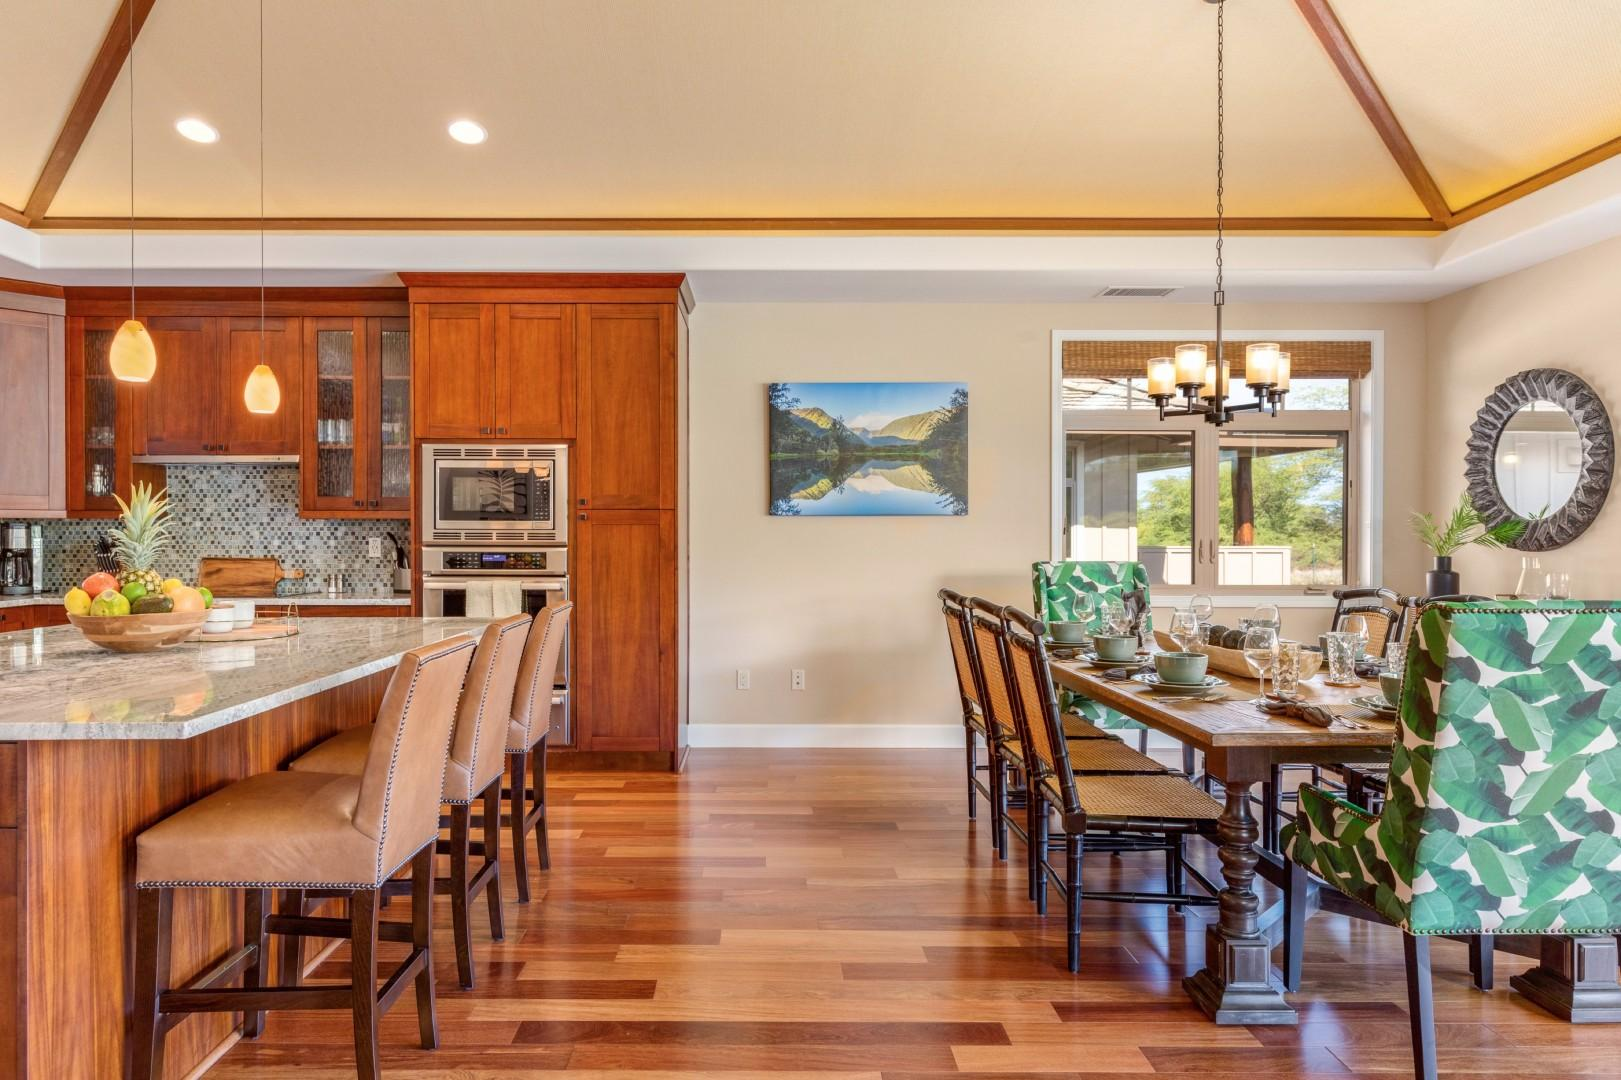 Breakfast bar and dining table for eight framed by soaring vaulted ceilings.